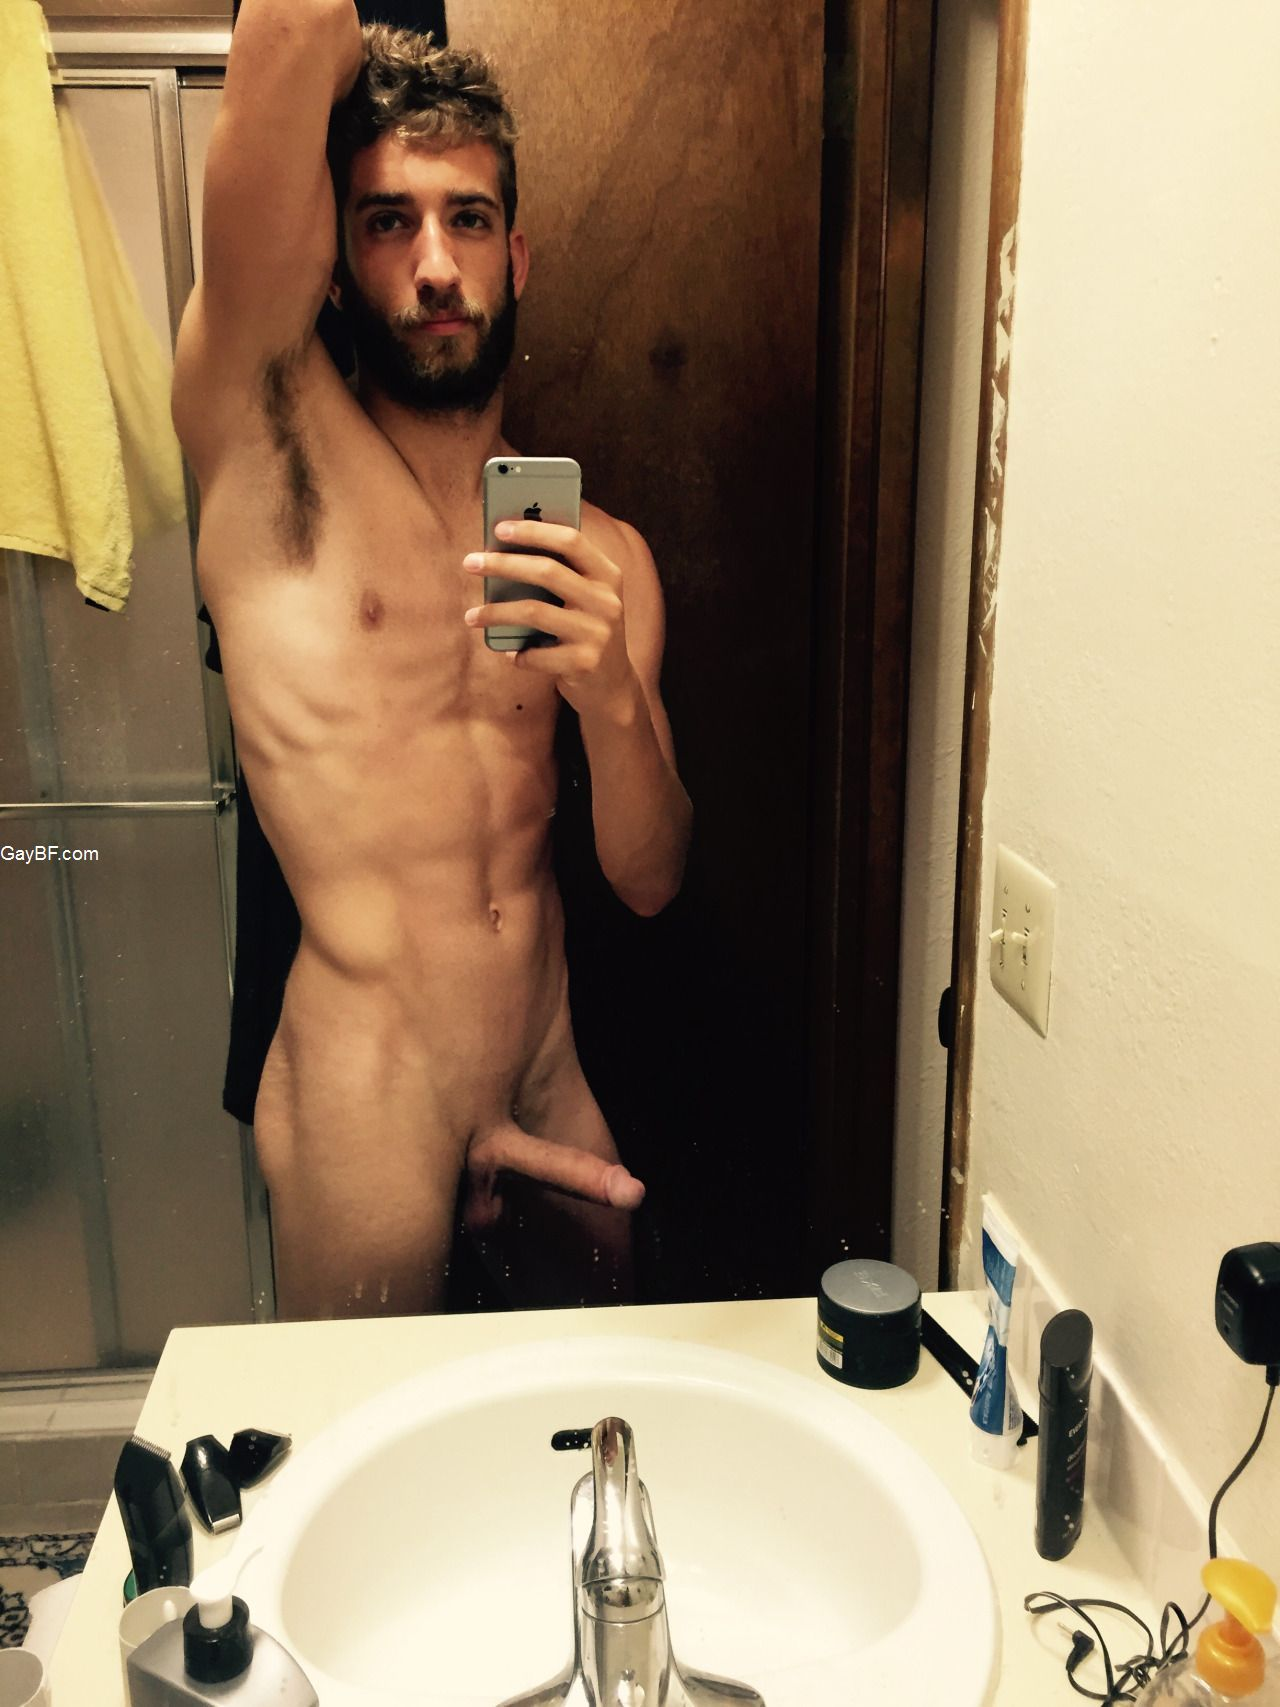 Straight Guys Naked Selfies  Gay Bf - Free Real Amateur -4968